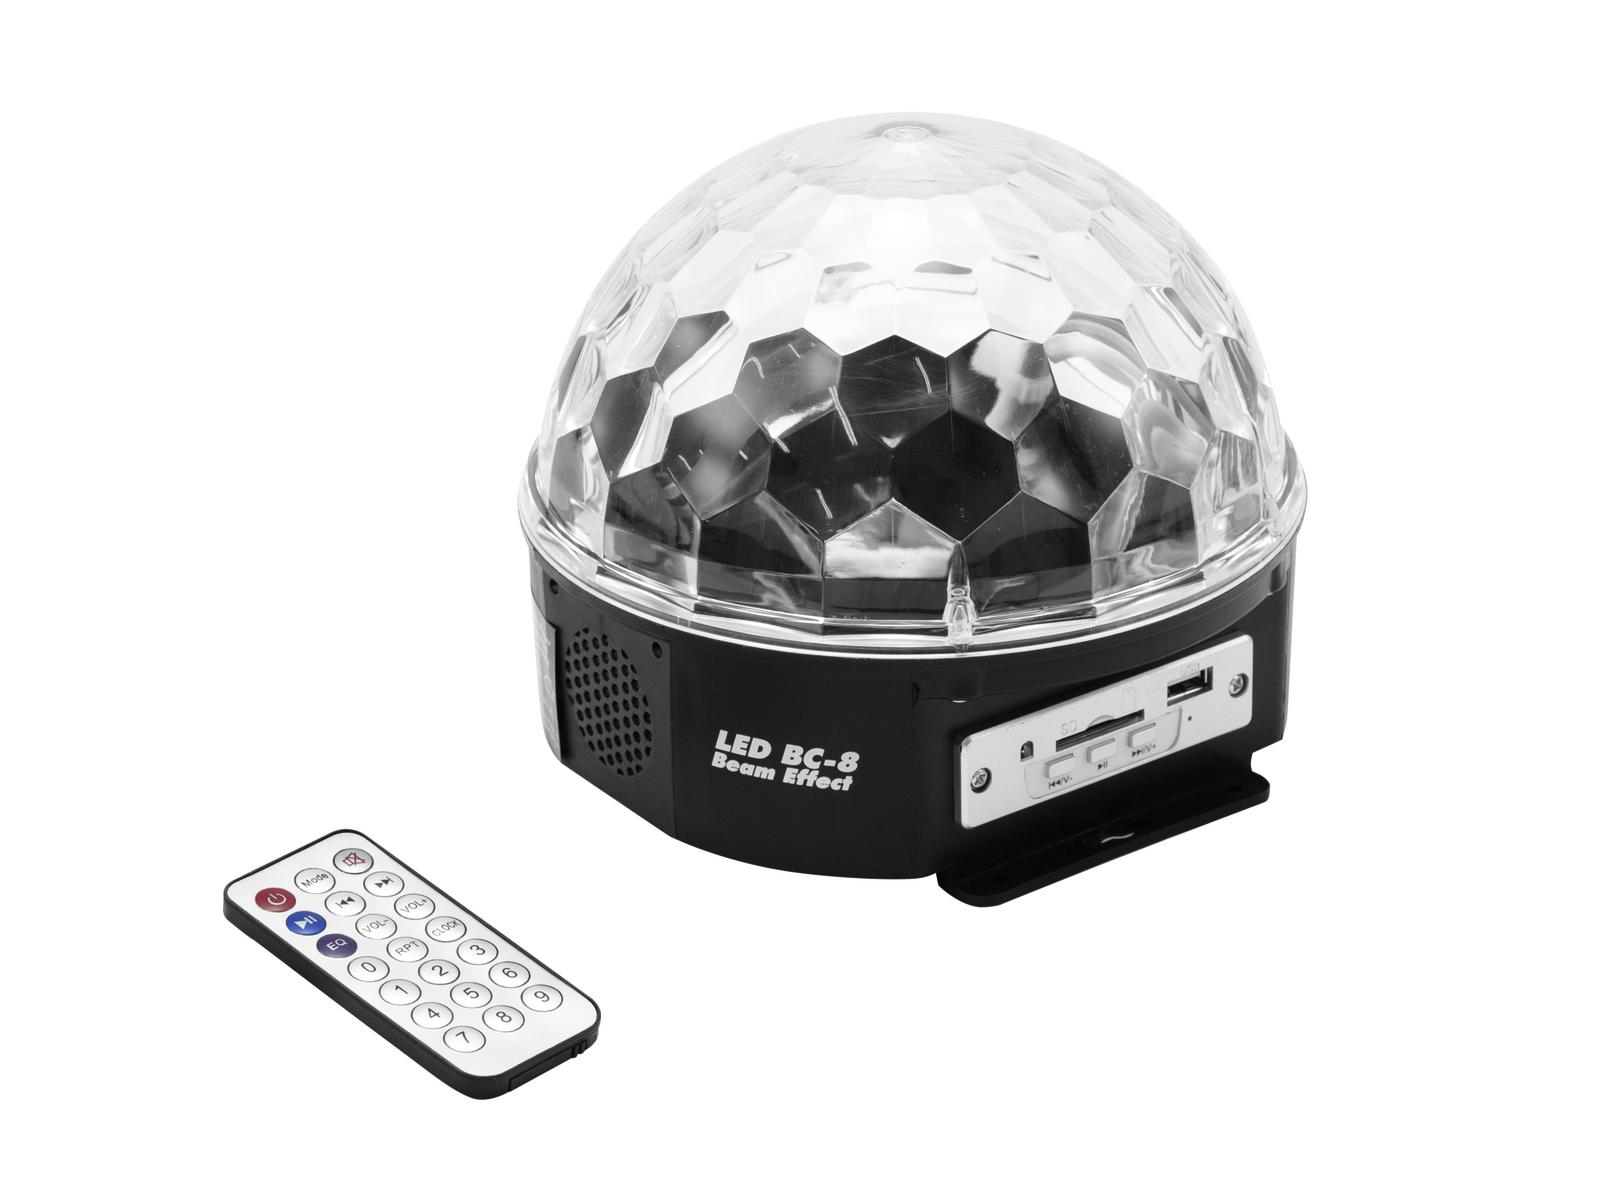 Effetto luce Light per Dj Mini ball a led DMX Eurolite MP3 Beam BC-8